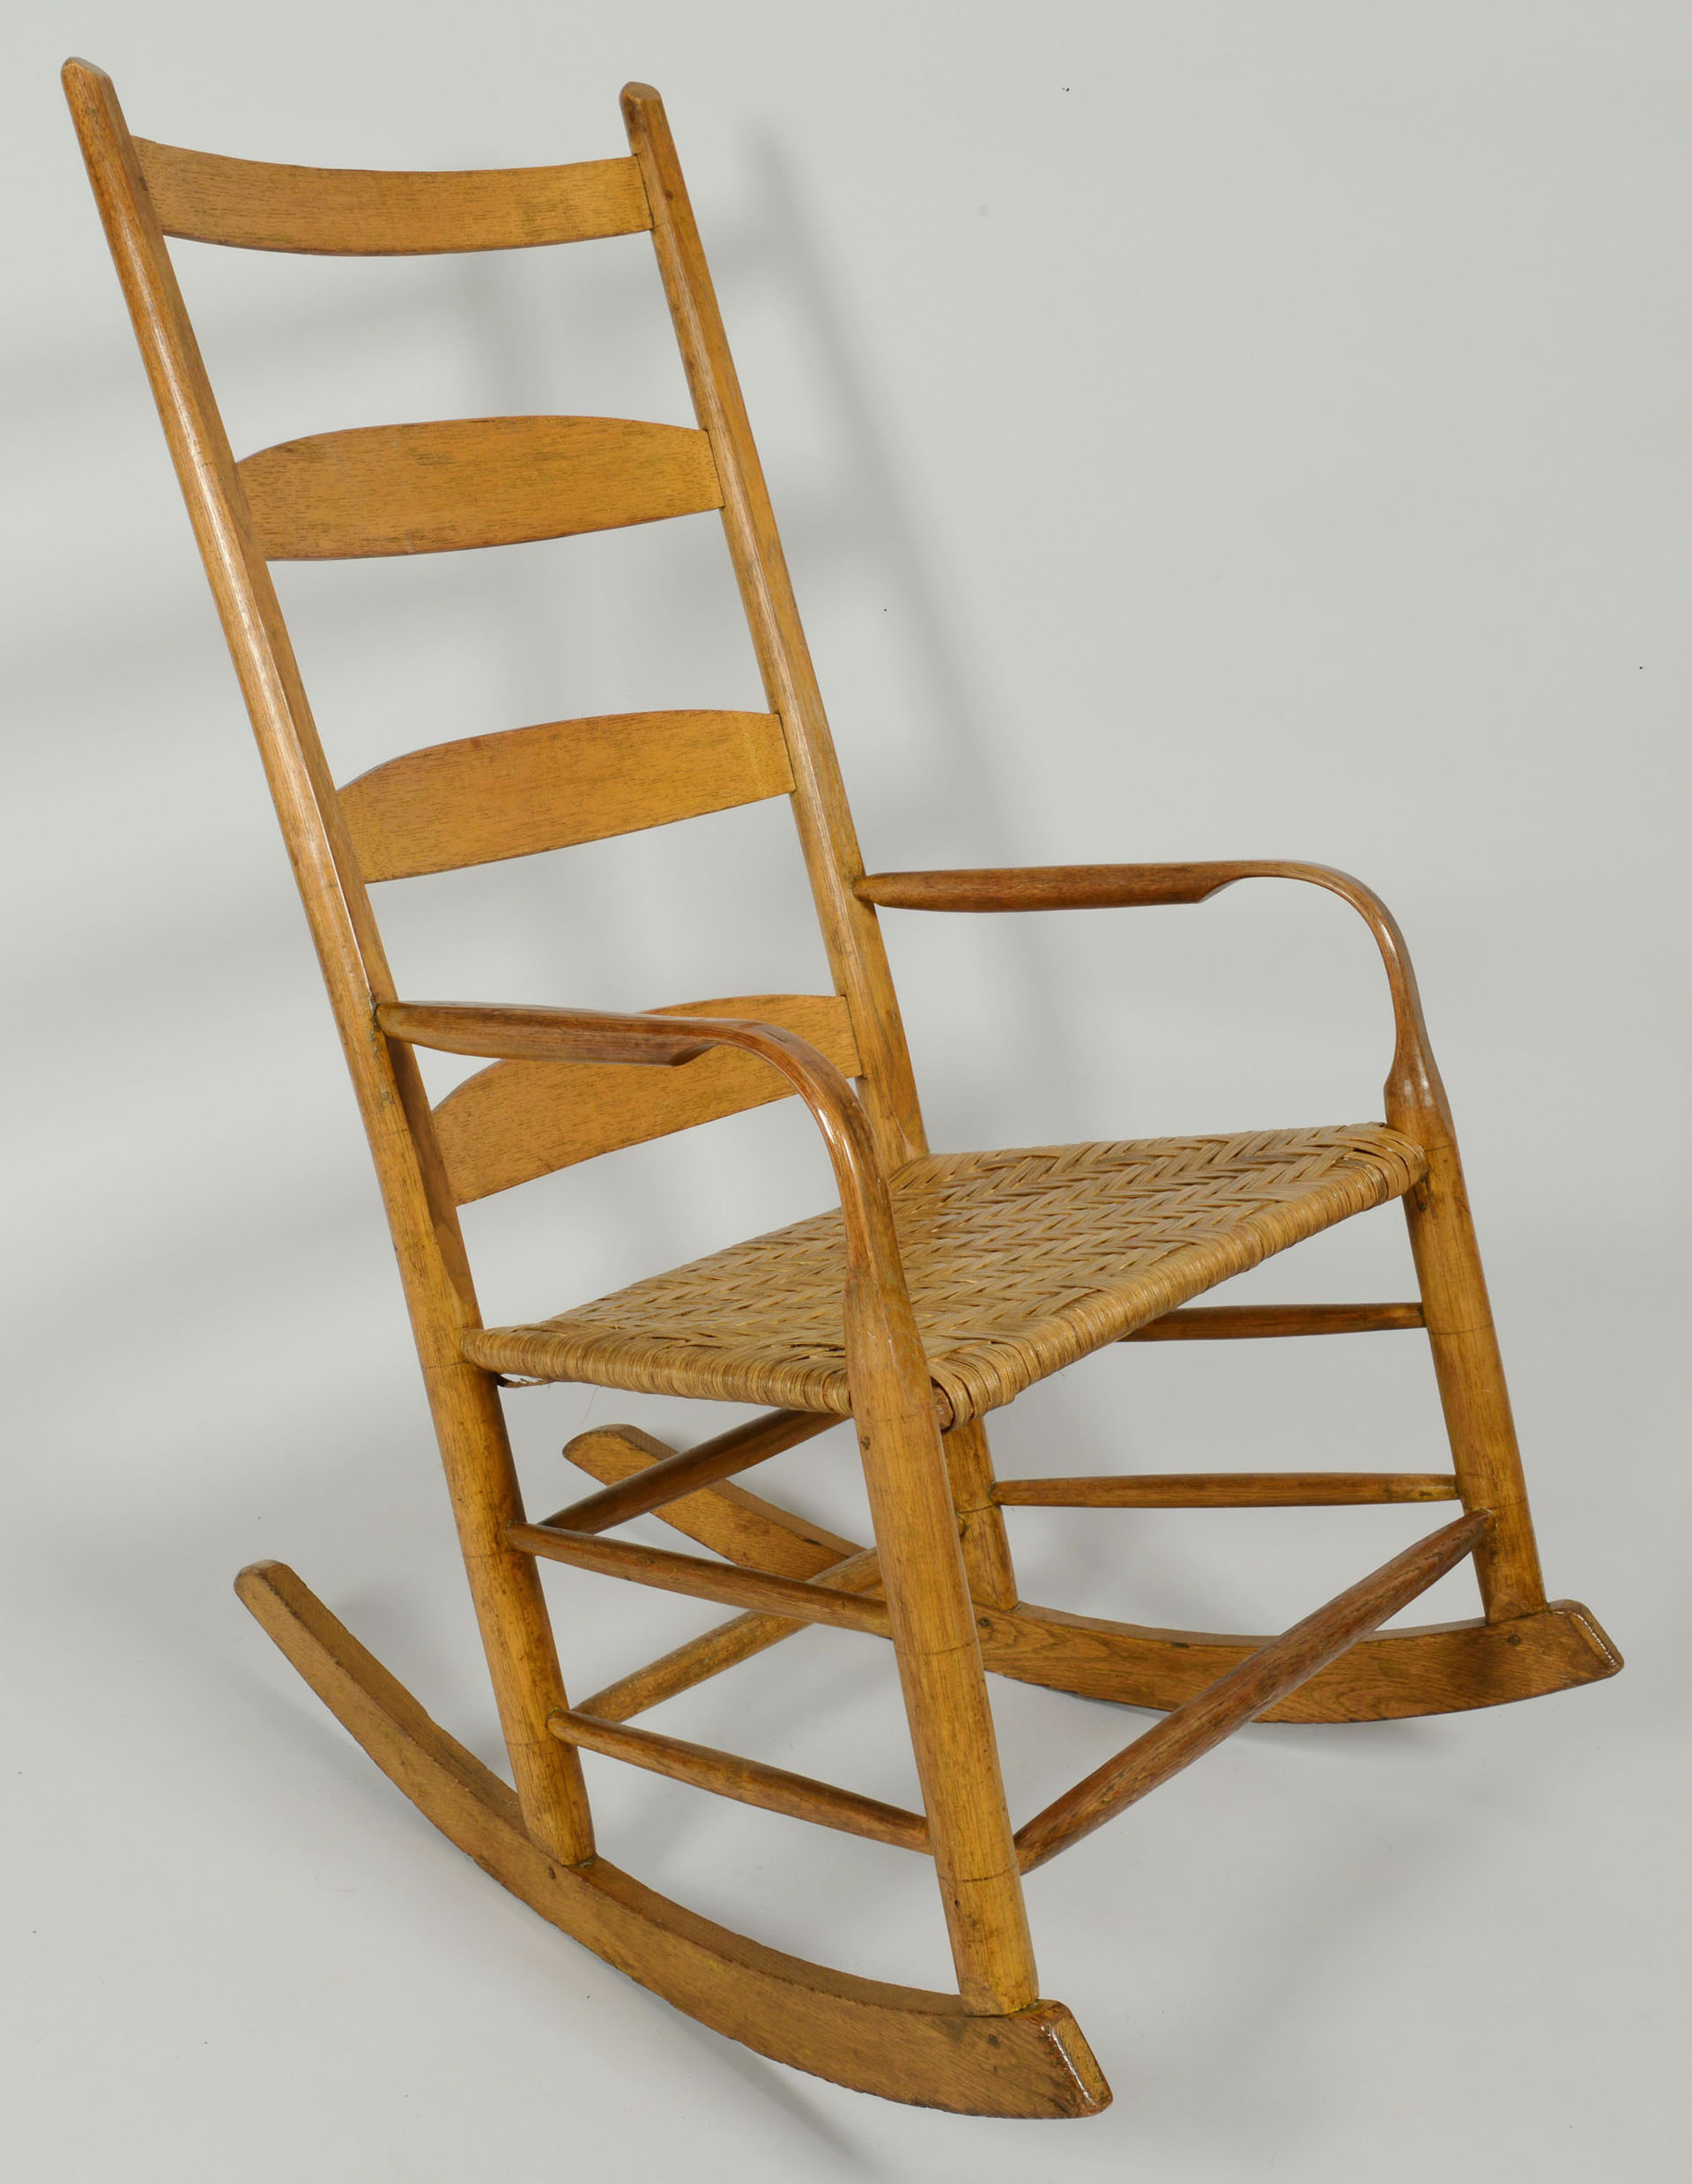 Strange Lot 468 Southwest Virginia Bentwood Rocking Chair Gmtry Best Dining Table And Chair Ideas Images Gmtryco